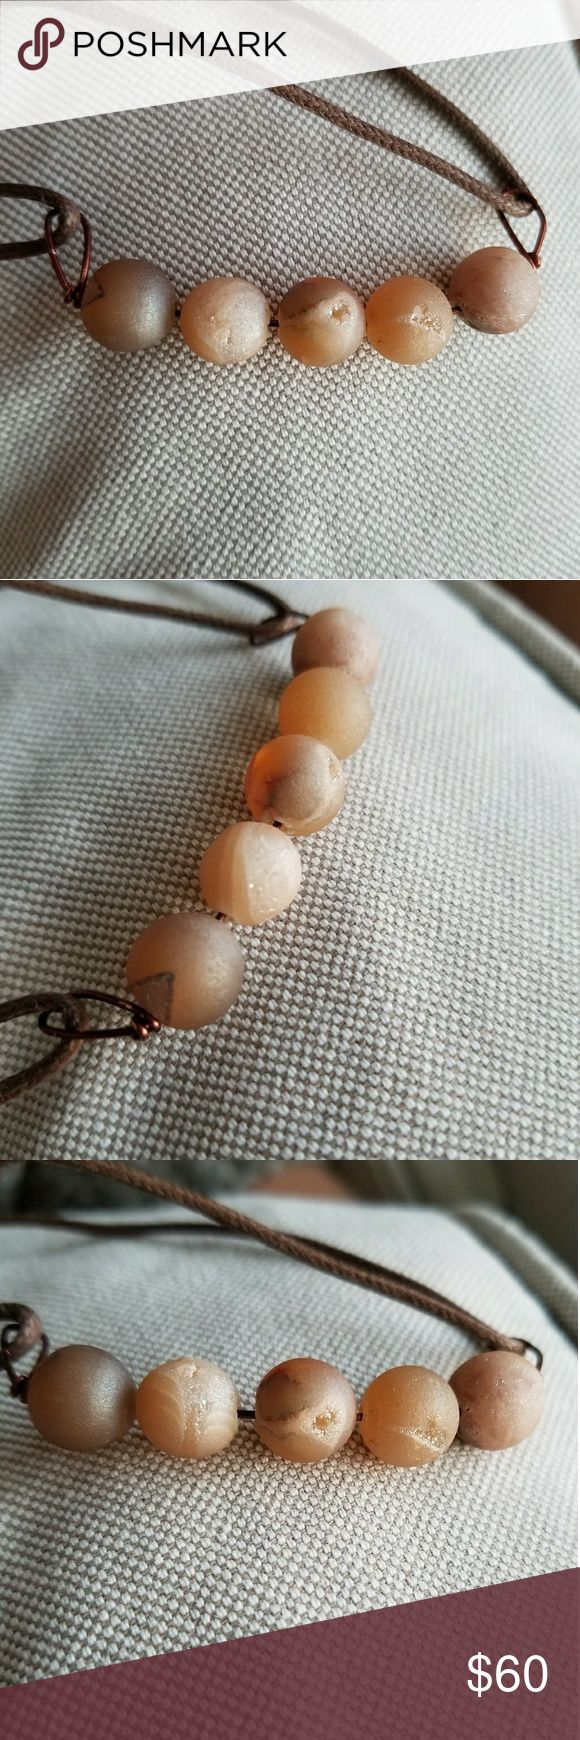 Rose Stone (Convertable) Necklace Five gorgeous, sparkly rosy stones make for a soft and earthy necklace. The surfaces of each sphere swirl with hints of gray, creamy white, and slightly glittery pale pinks. Currently on a brown fabric adjustable cord.   Picture provided of the current necklace length. May be converted into a bracelet by loosening/tightening the cord and wrapping around your wrist.   🌹Bundle your likes for bigger savings!🌹 Jewelry Necklaces